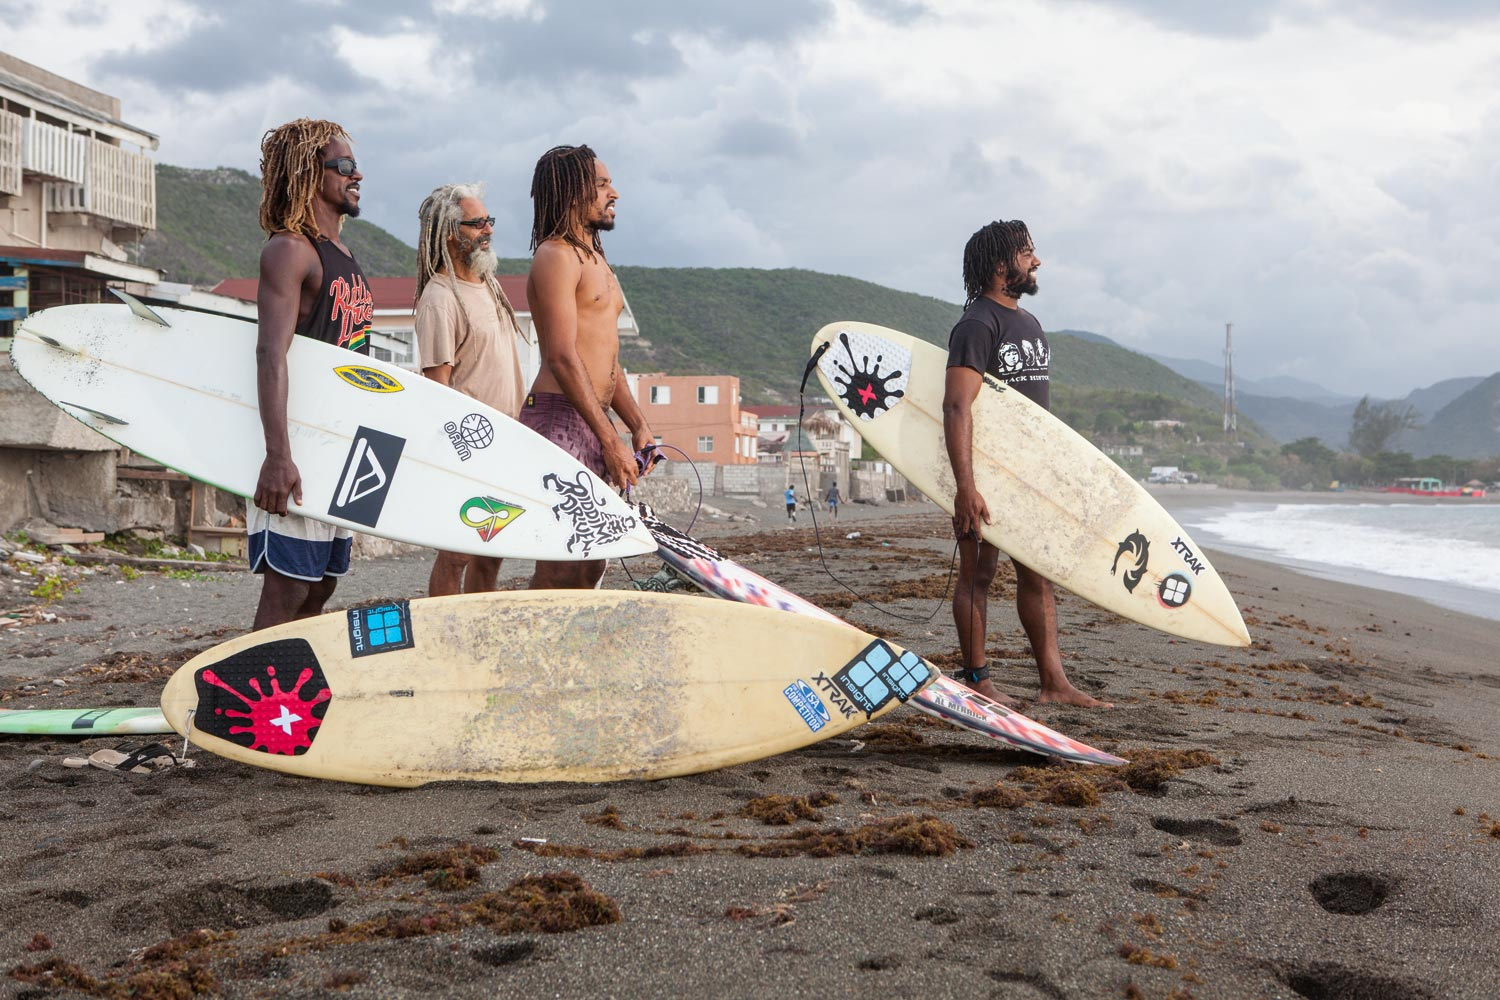 Icah, Billy, Inilek, and Ishack Wilmot get ready to hit the water. Photography by Marlon James